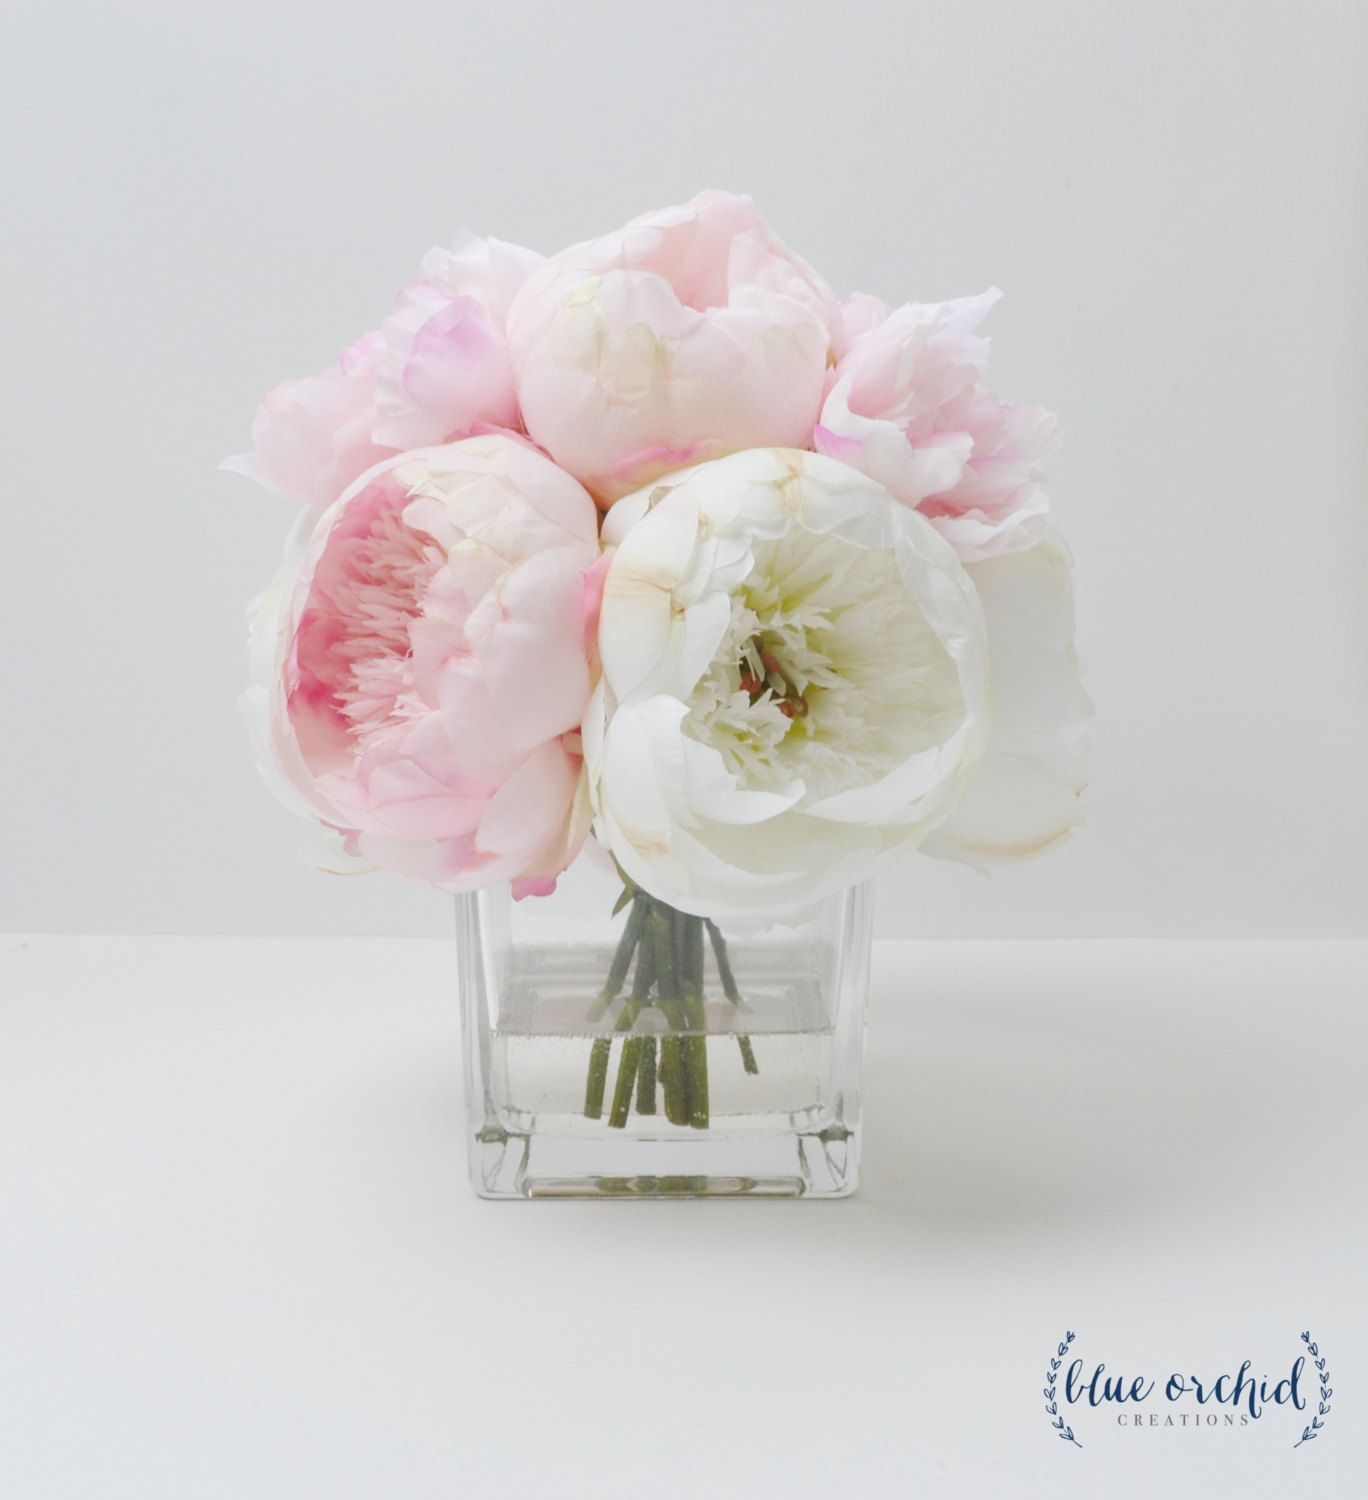 Peony arrangement silk peonies flower arrangement silk flower peony arrangement silk peonies flower arrangement silk flower arrangement vase of peonies flowers silk flowers pink peony arrangement dhlflorist Images